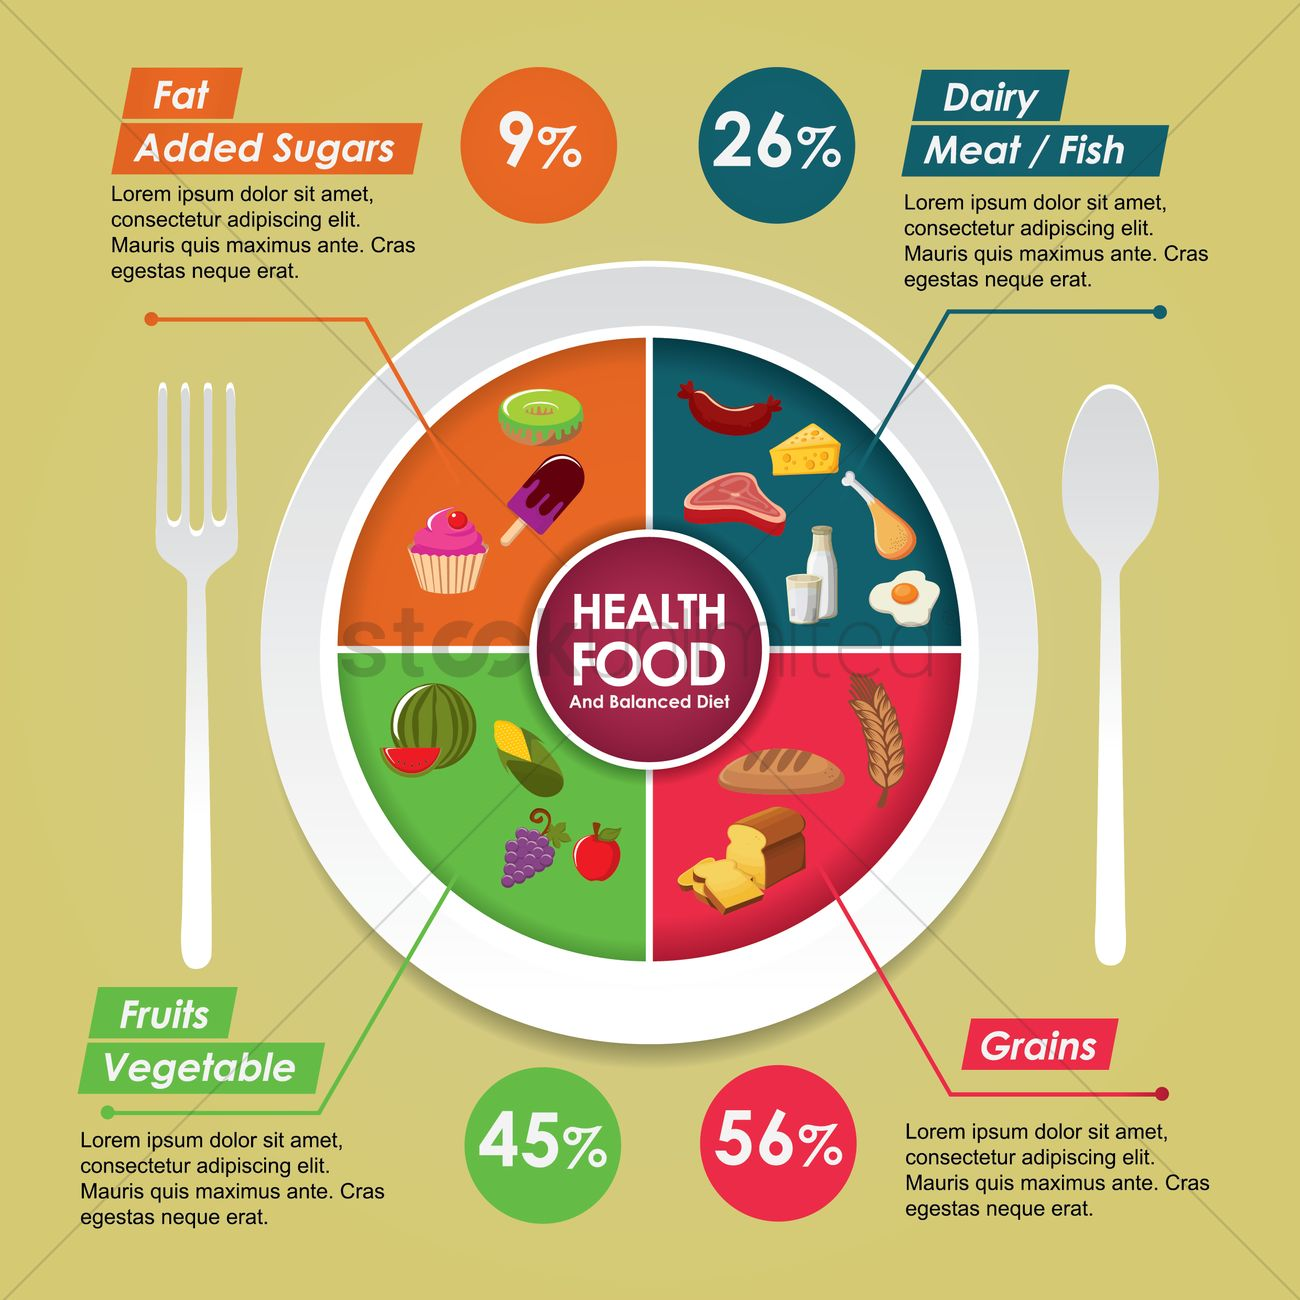 Health Food And Balanced Diet Design Vector Image